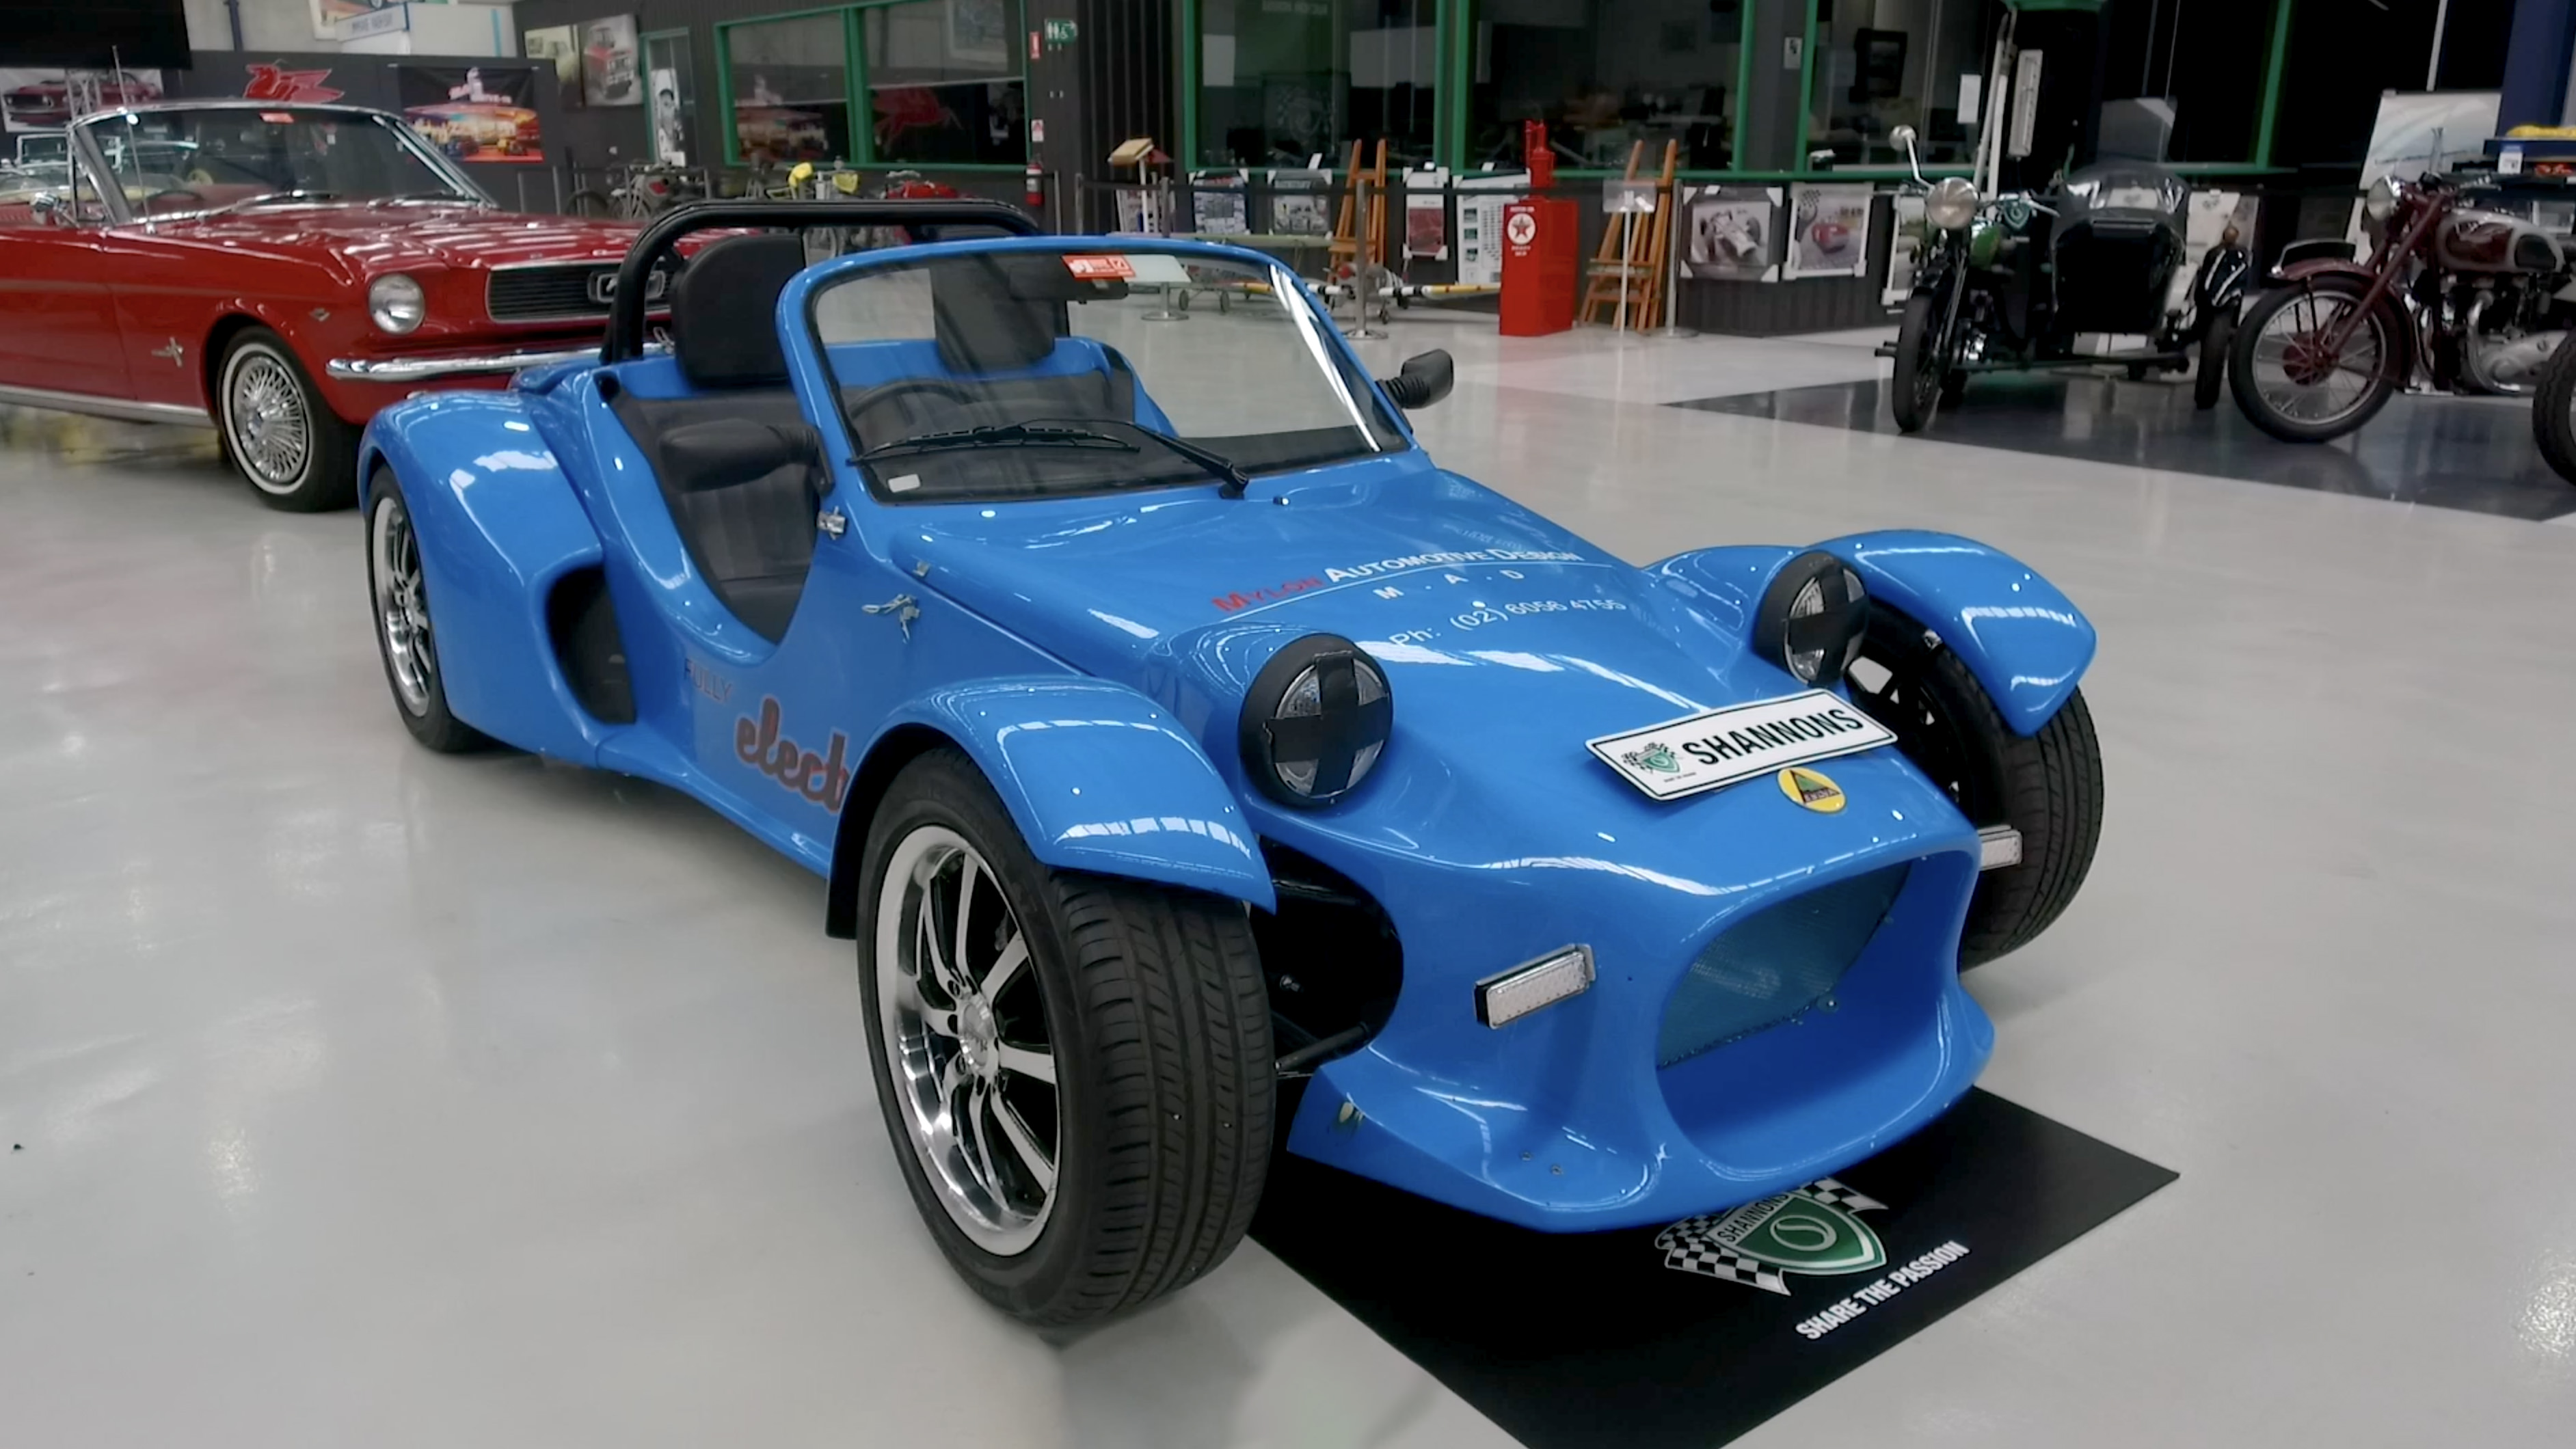 2011 Sylva Mojo Electric Roadster - 2020 Shannons Spring Timed Online Auction